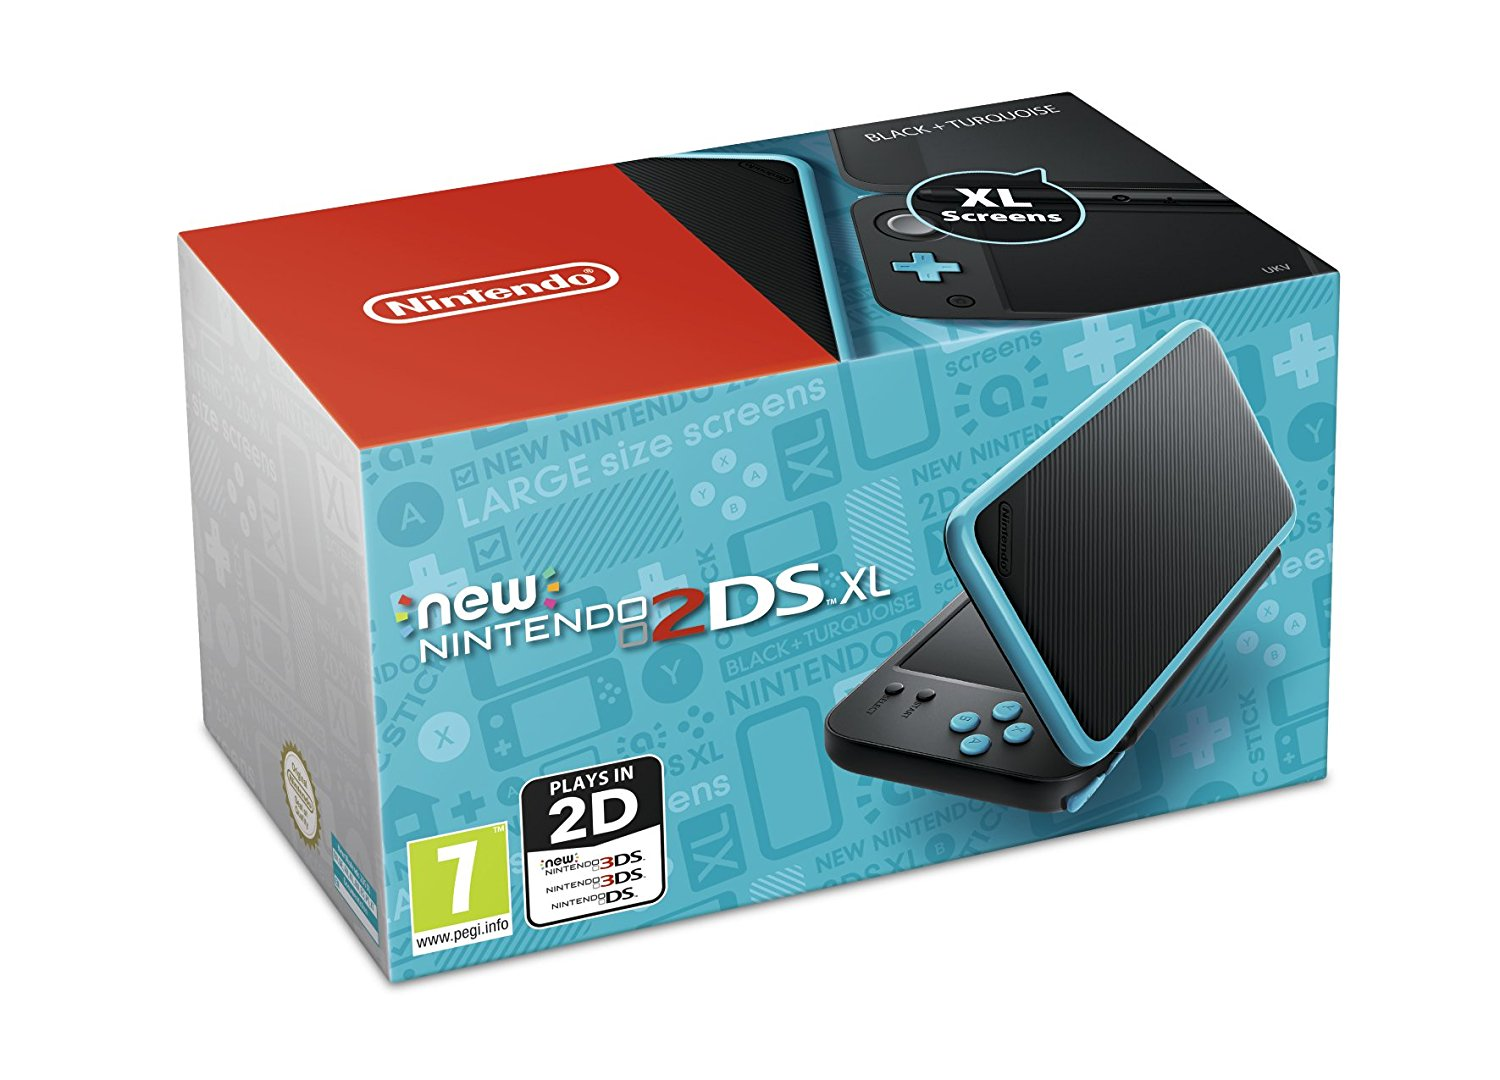 New Nintendo 2DS XL Black and Turquoise